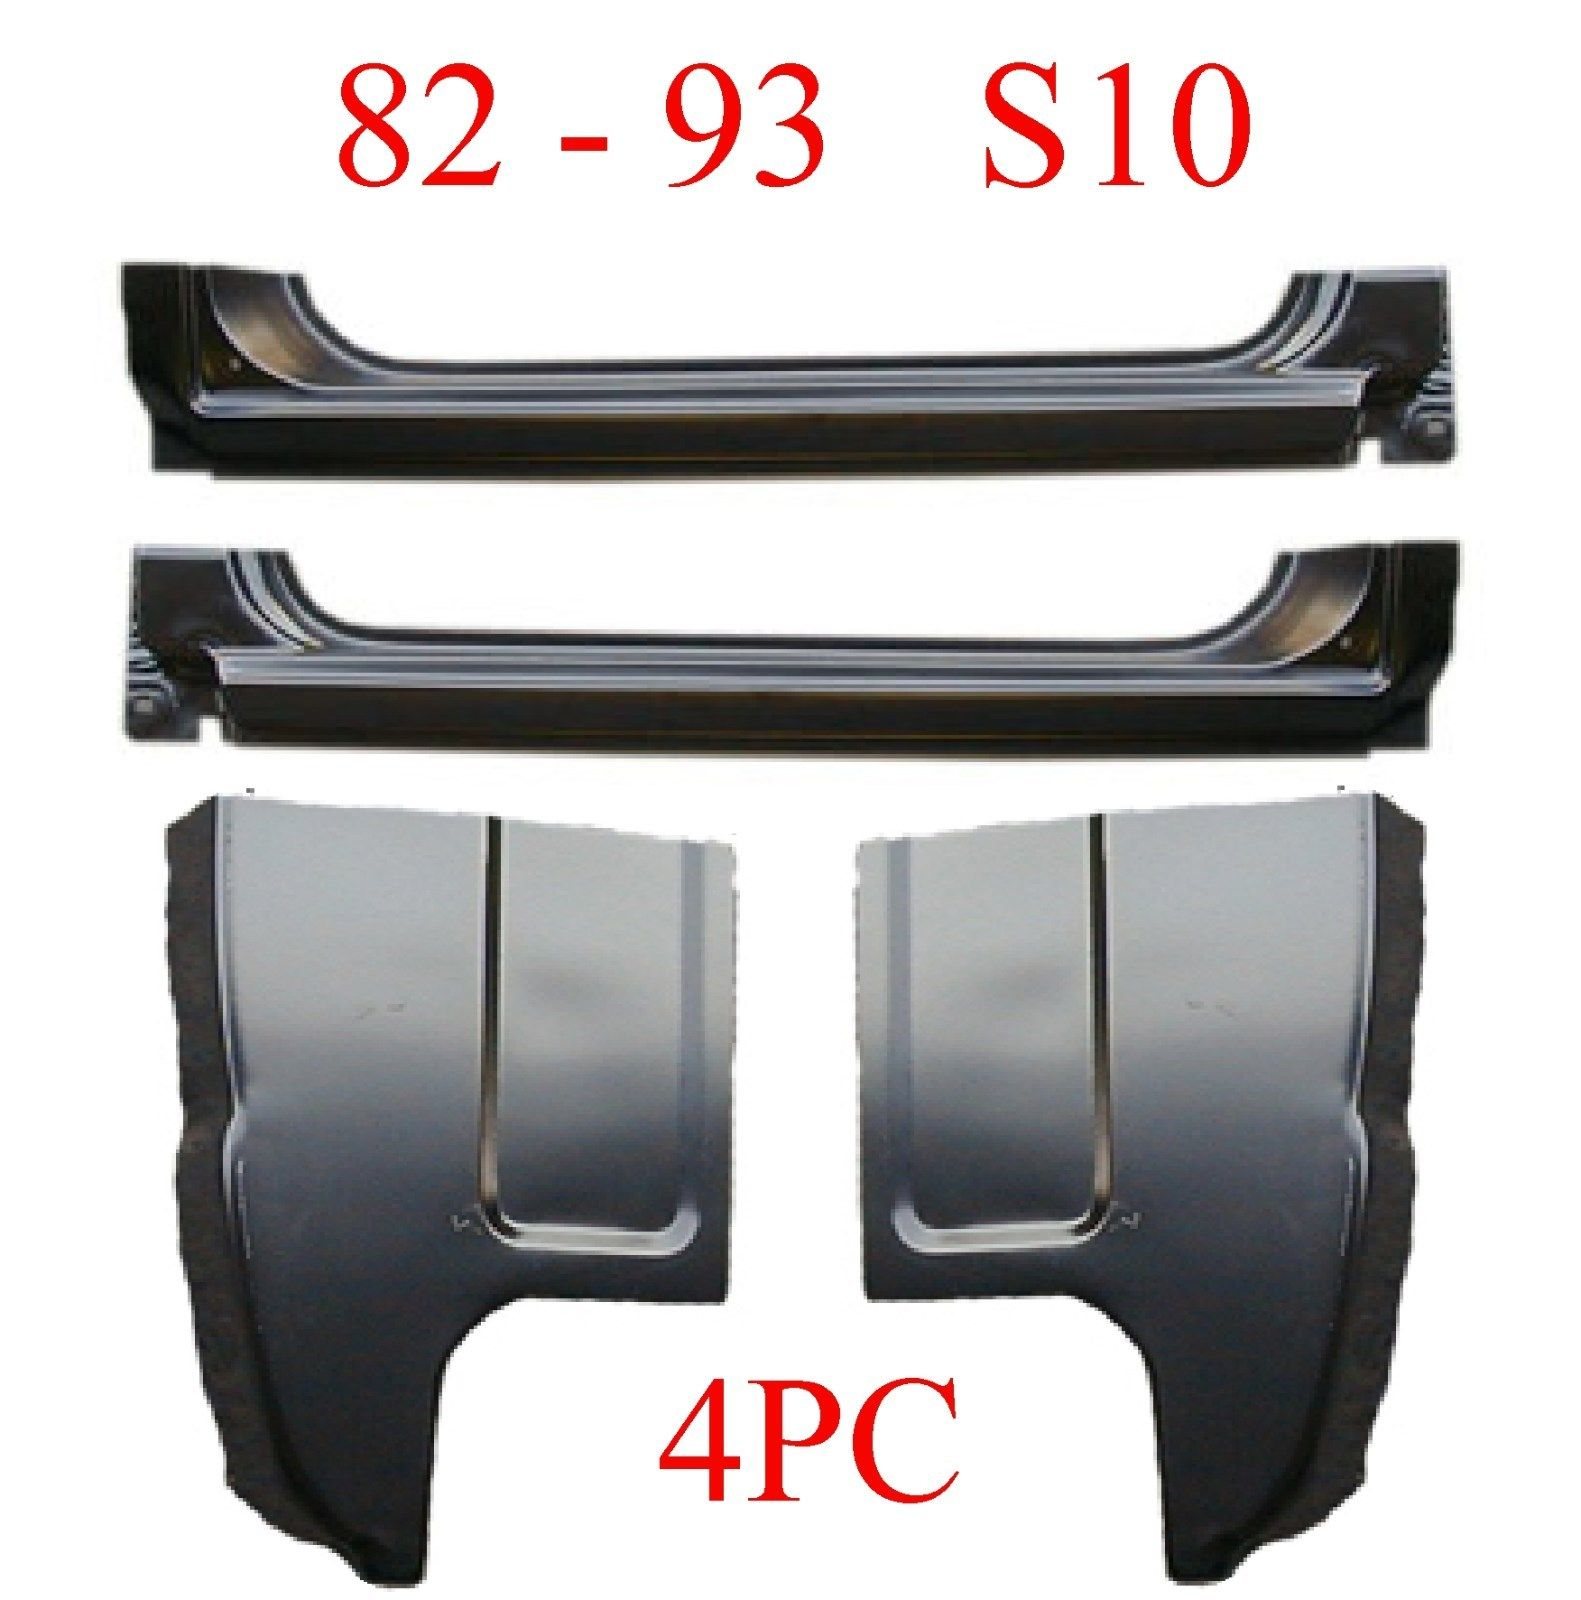 82-93 Chevy S10 4Pc Extended Rocker & Cab Corner Kit